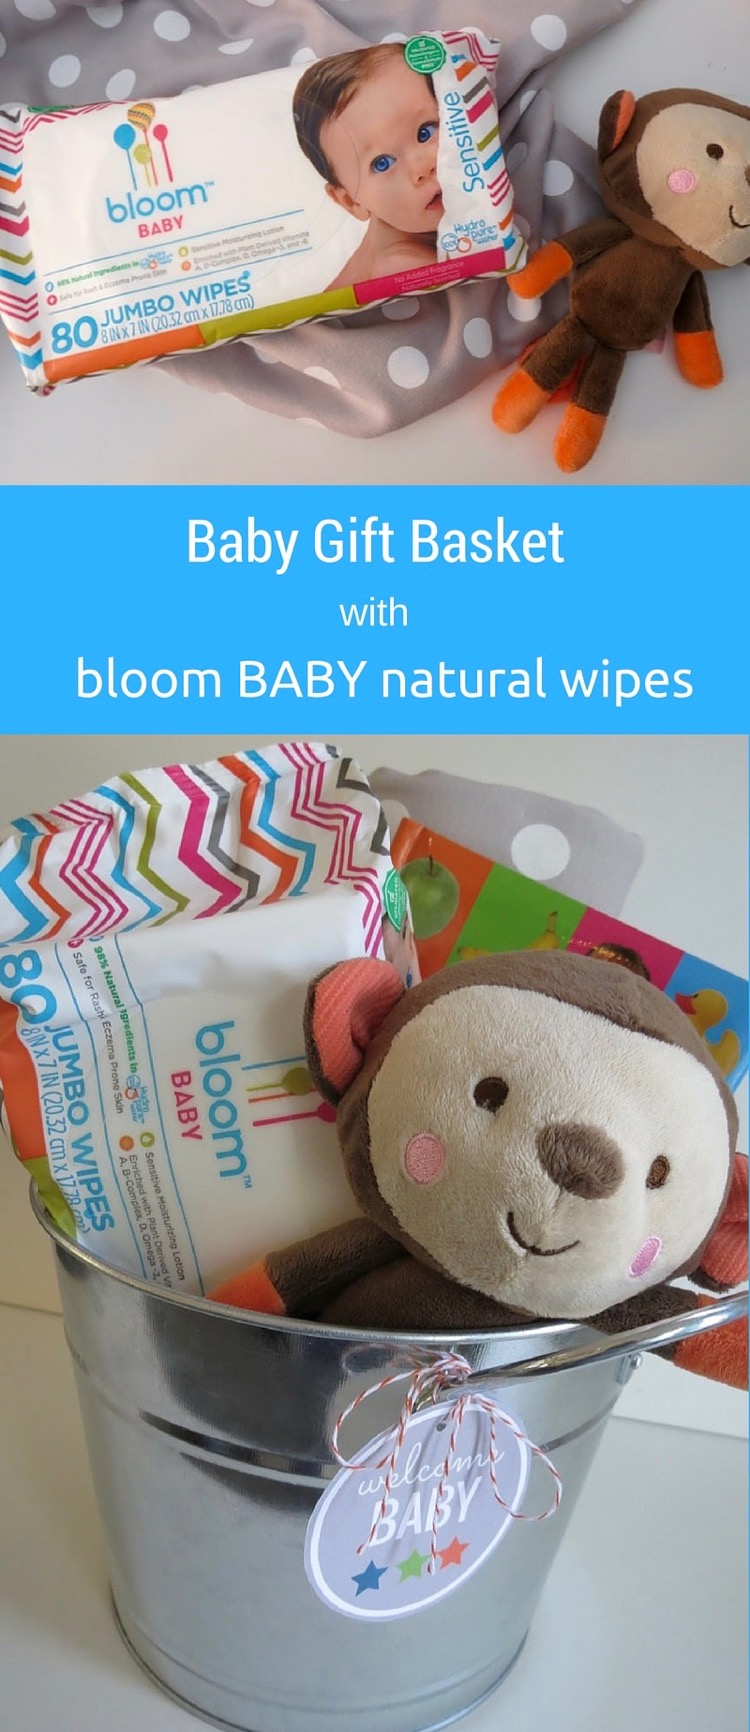 Target Baby Wipes Bloom Baby Natural Baby Wipes Baby Gift Ideas All Things Target